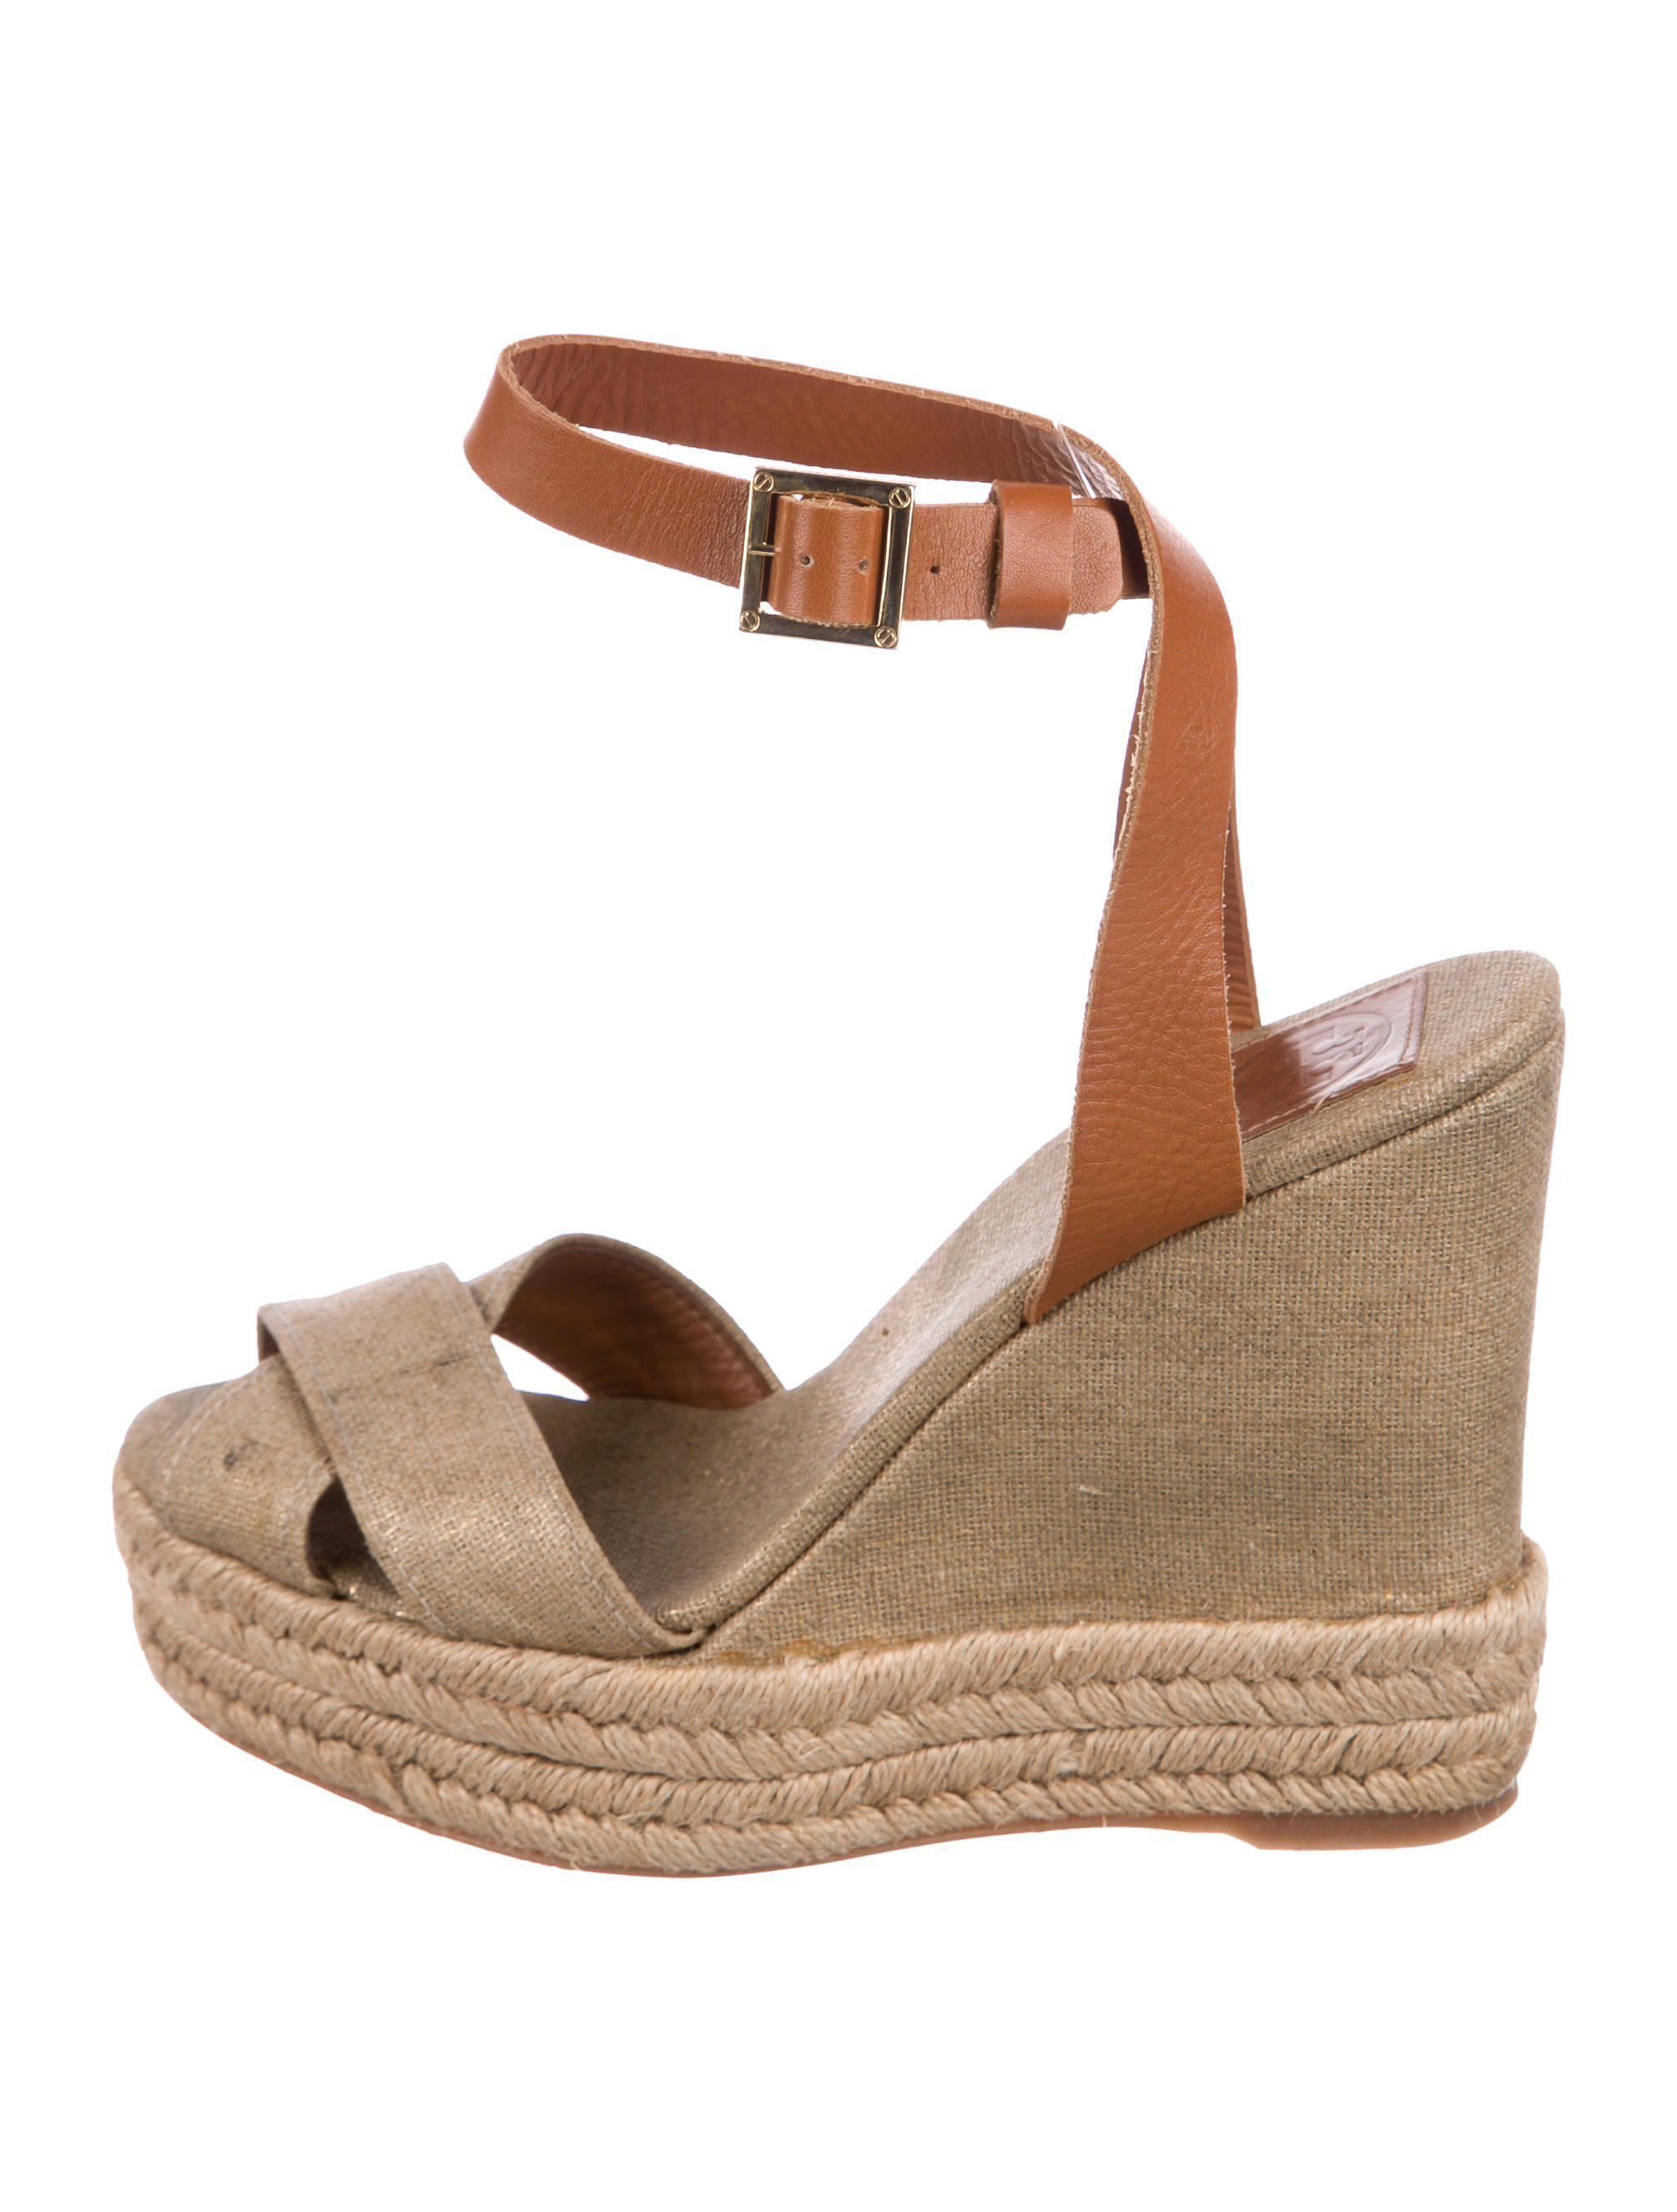 1f674aa60 Lyst - Tory Burch Canvas Wedge Sandals Beige in Natural